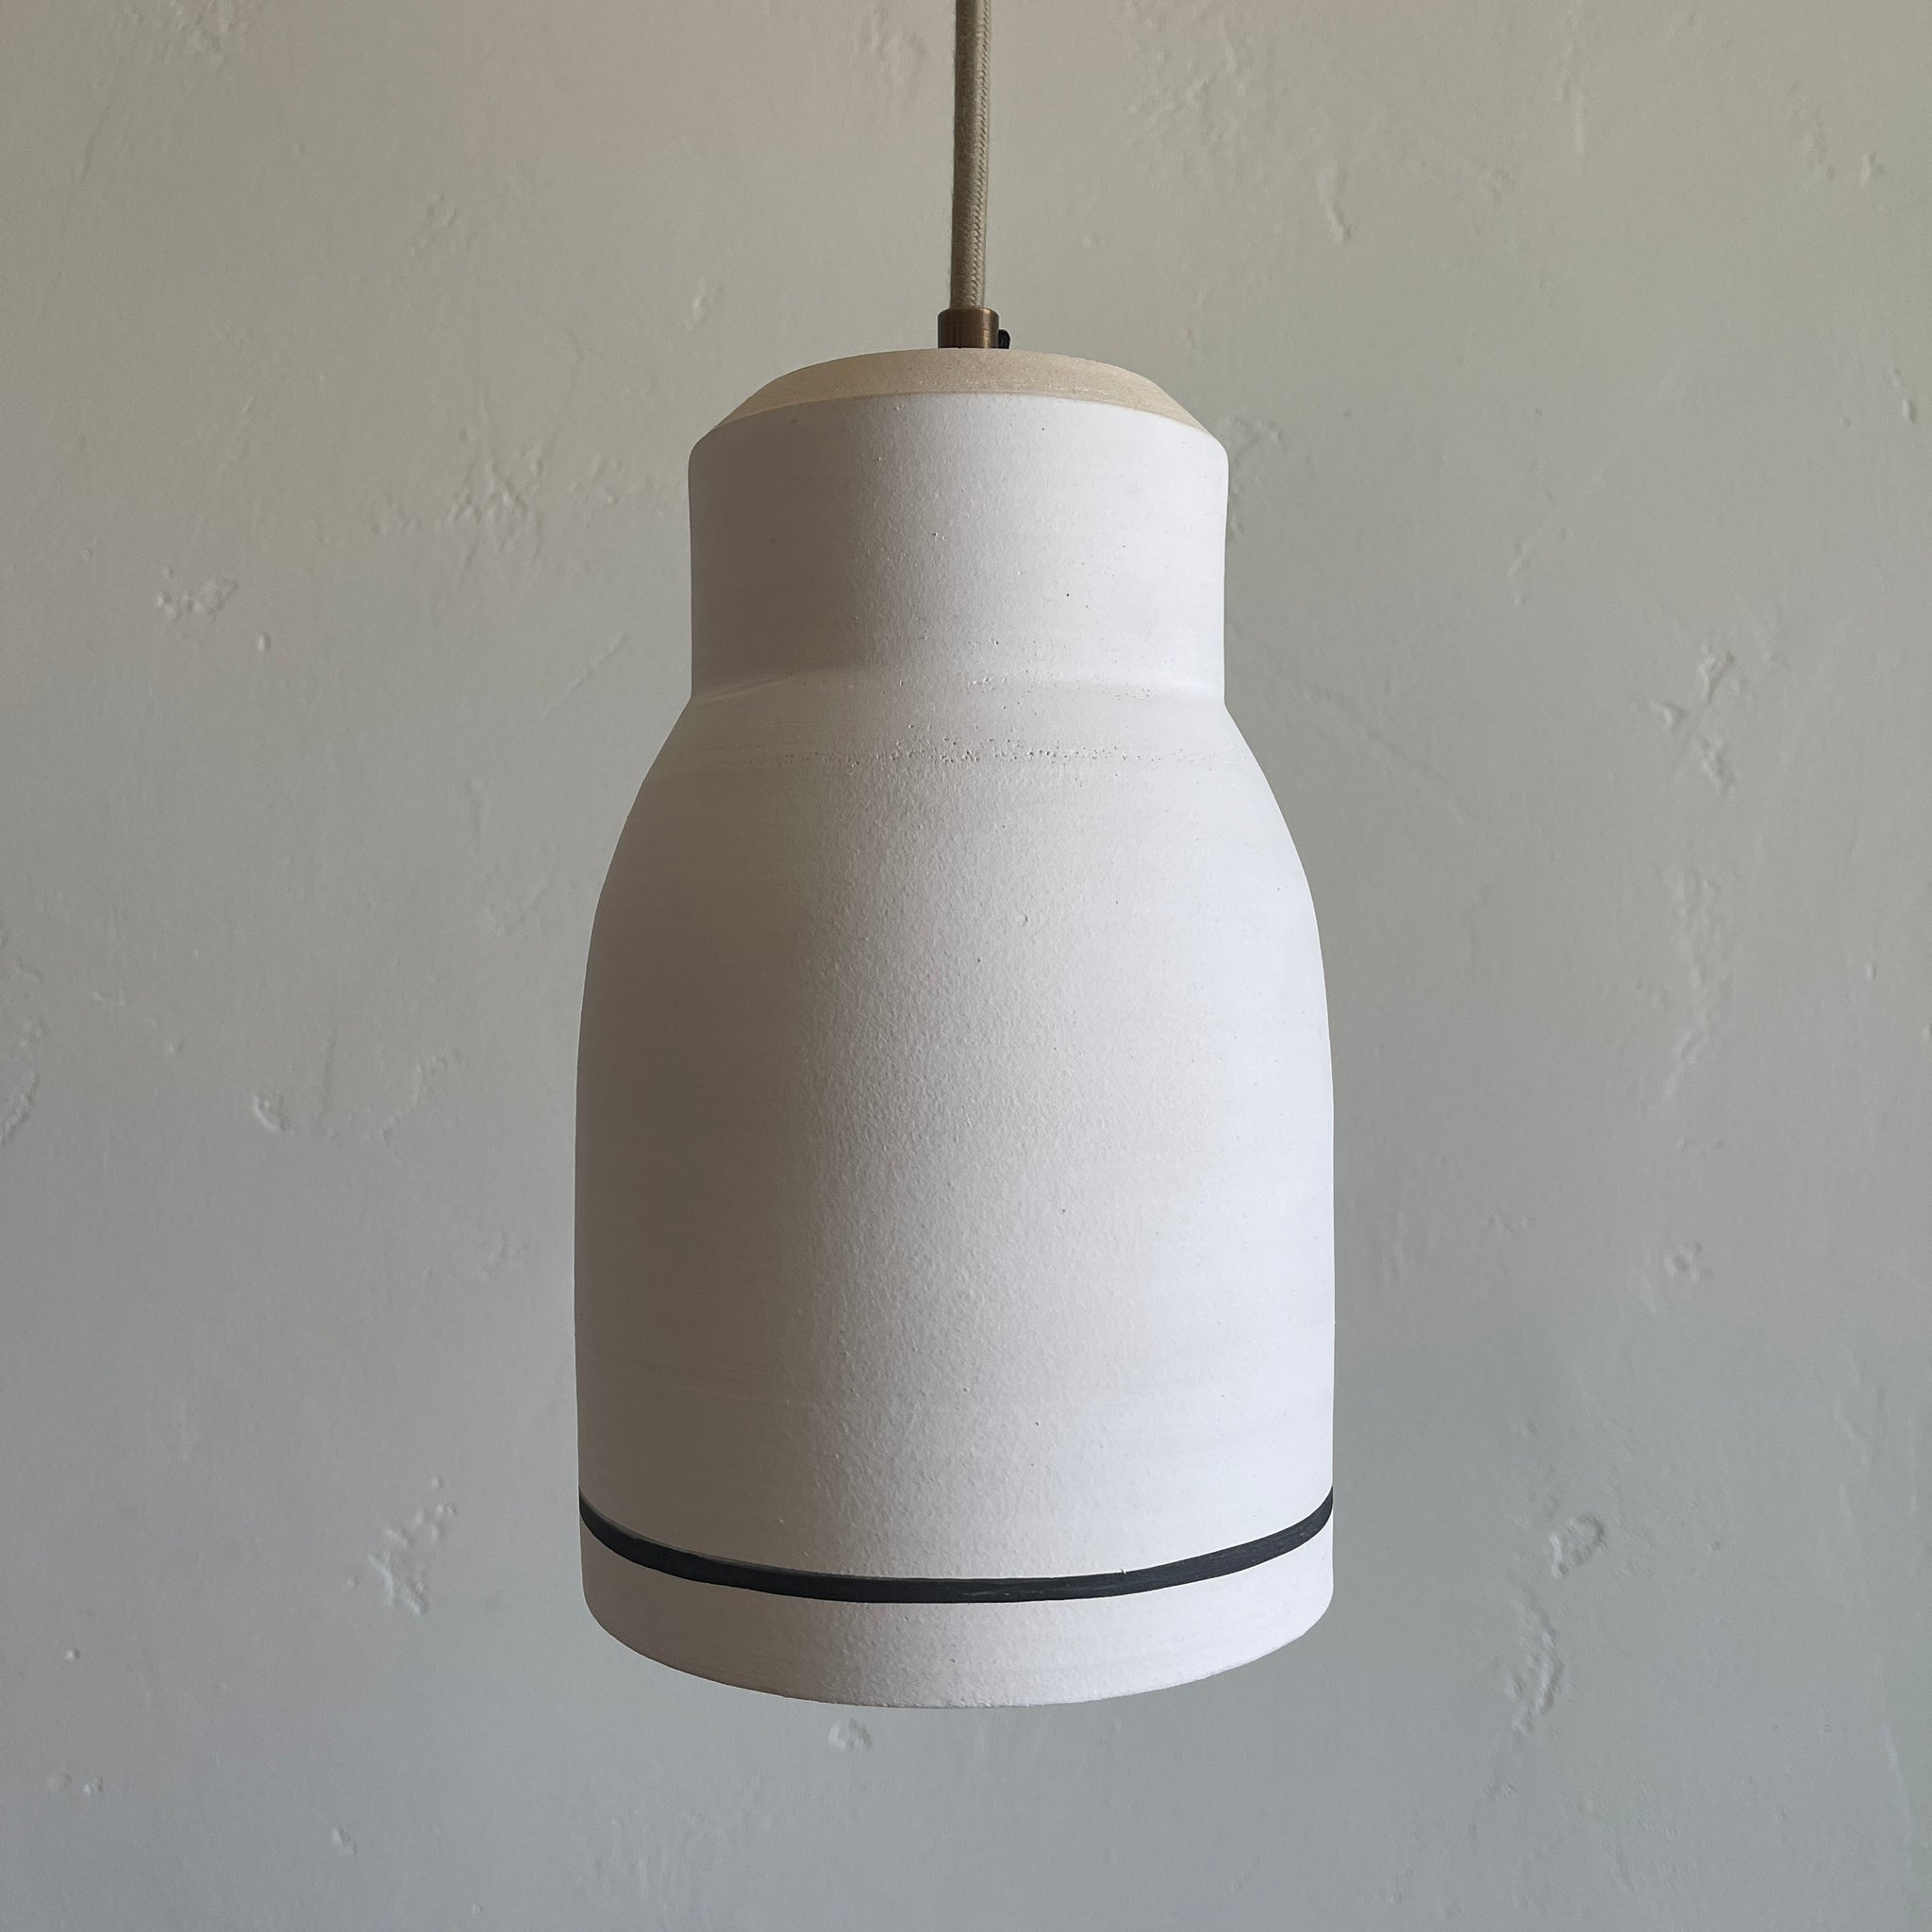 Hanging Bell Pendant Lamp with Stripe